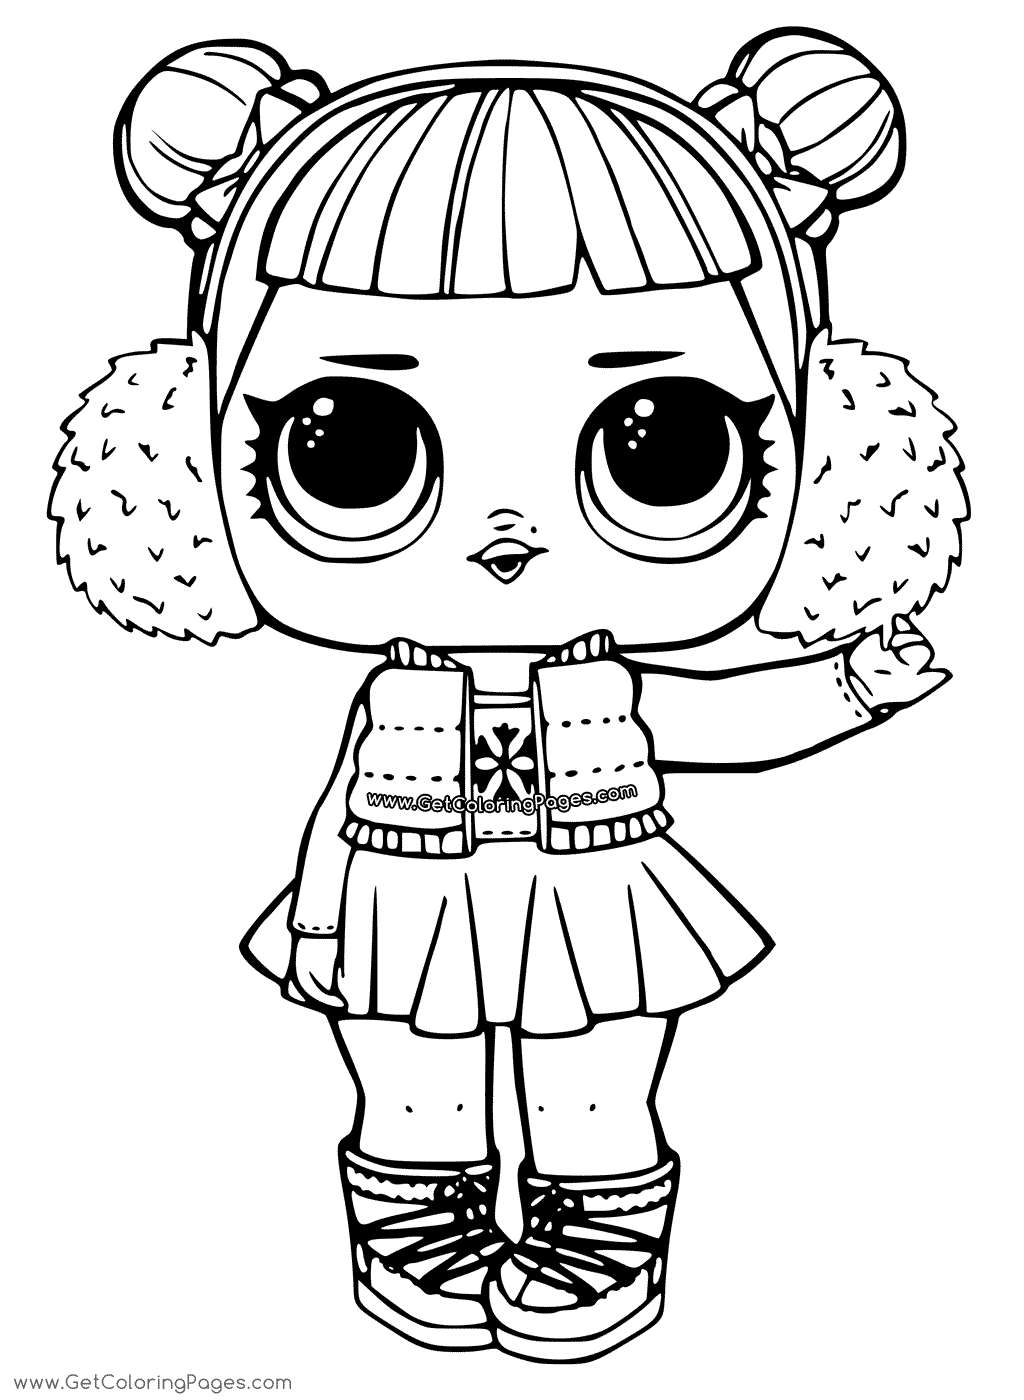 Pin on LOL Surprise Coloring Pages